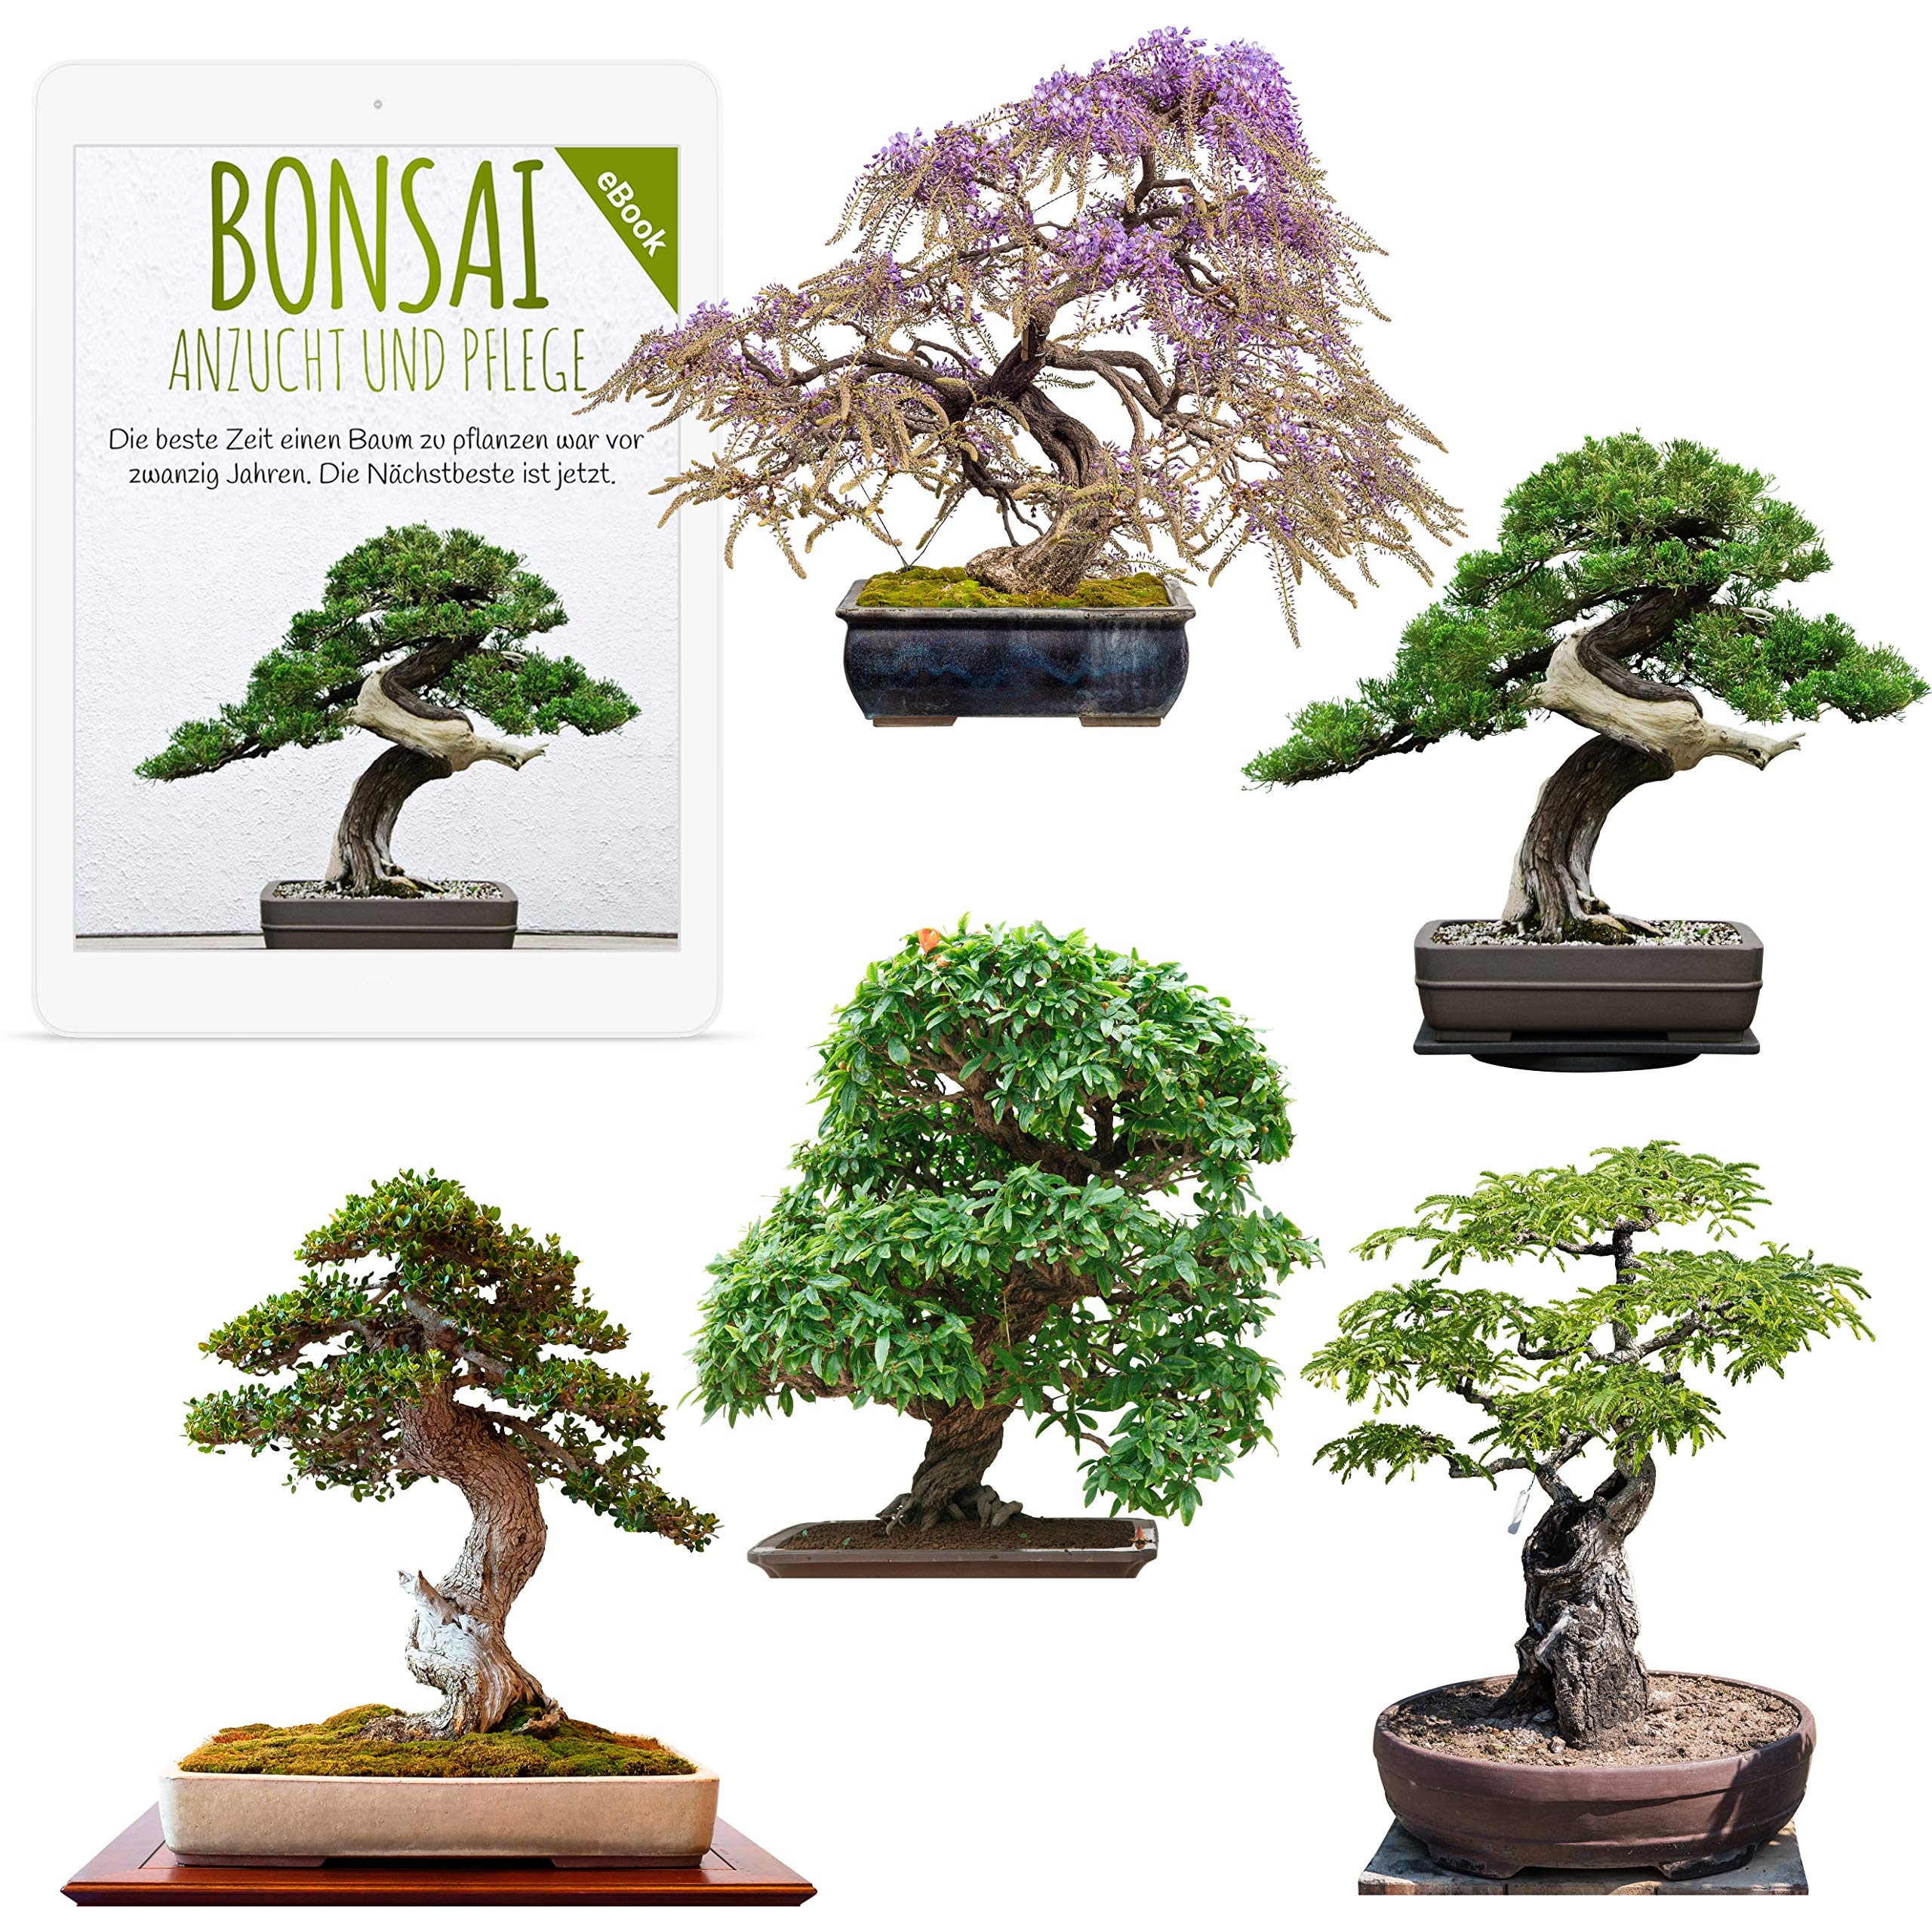 Exotic Bonsai Seeds With High Germination Rate Plant Seed Set For Your Own Bonsai Tree Mix Of 5 Incl Free Ebook Buy Online In India At Desertcart In Productid 130111881